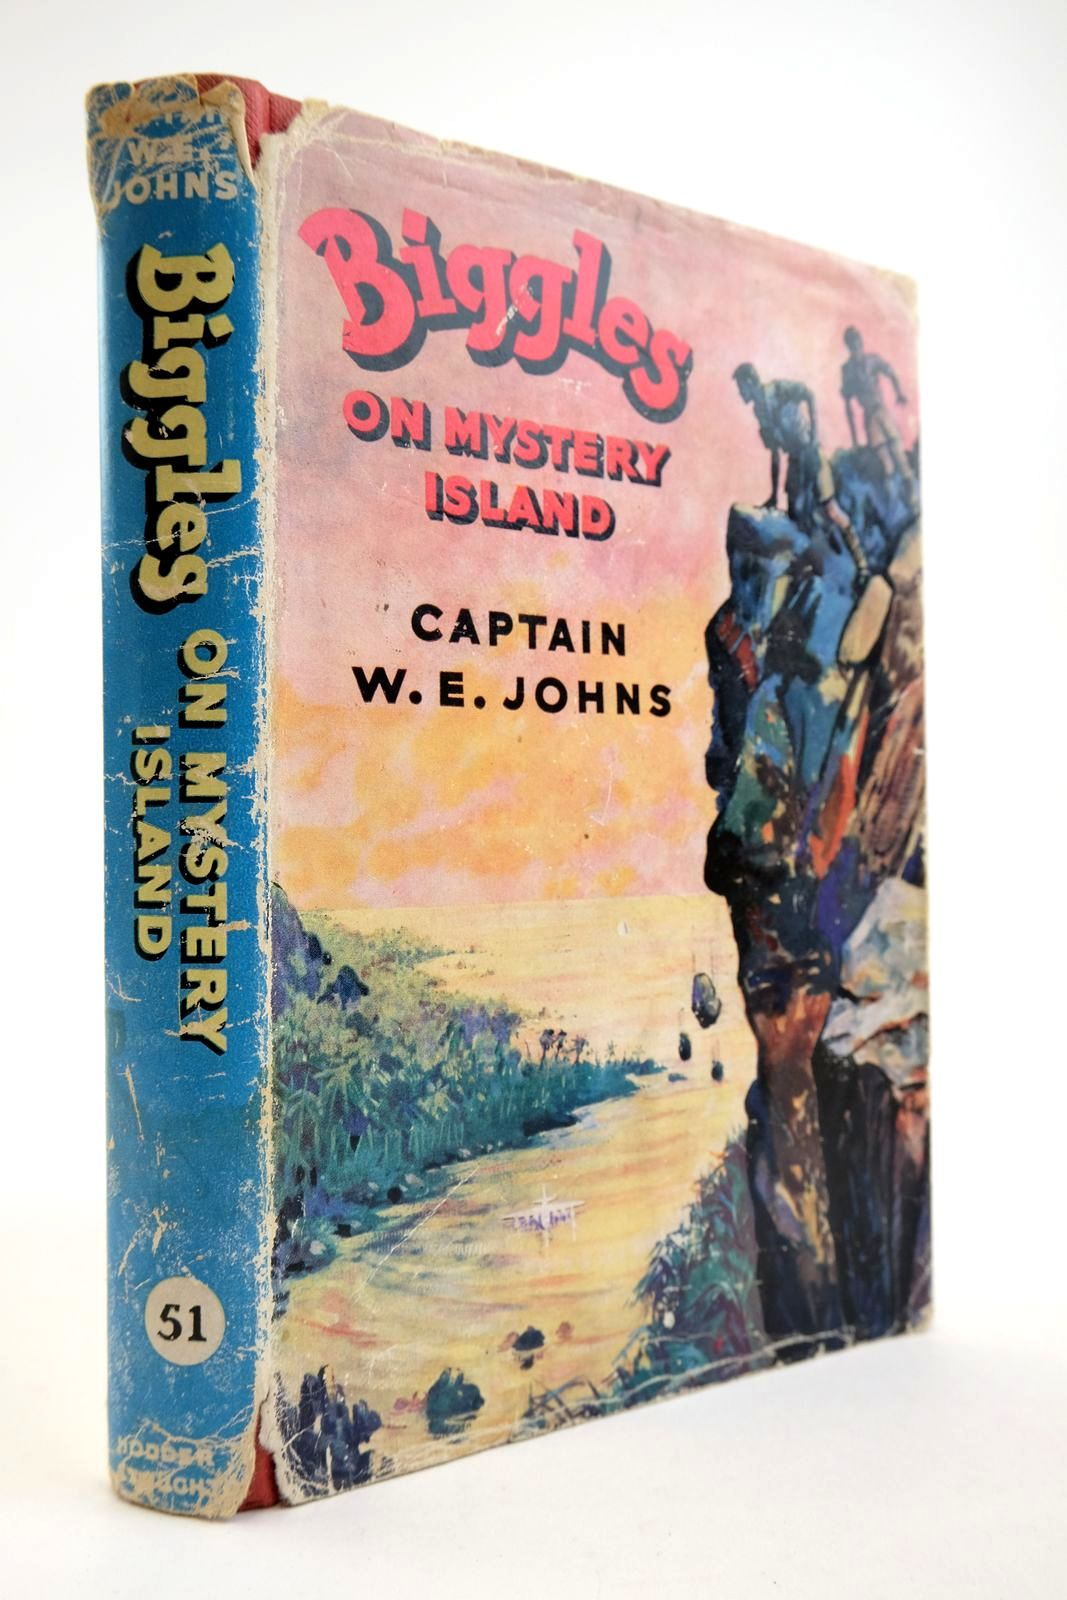 Photo of BIGGLES ON MYSTERY ISLAND written by Johns, W.E. illustrated by Stead,  published by Hodder & Stoughton (STOCK CODE: 2134114)  for sale by Stella & Rose's Books